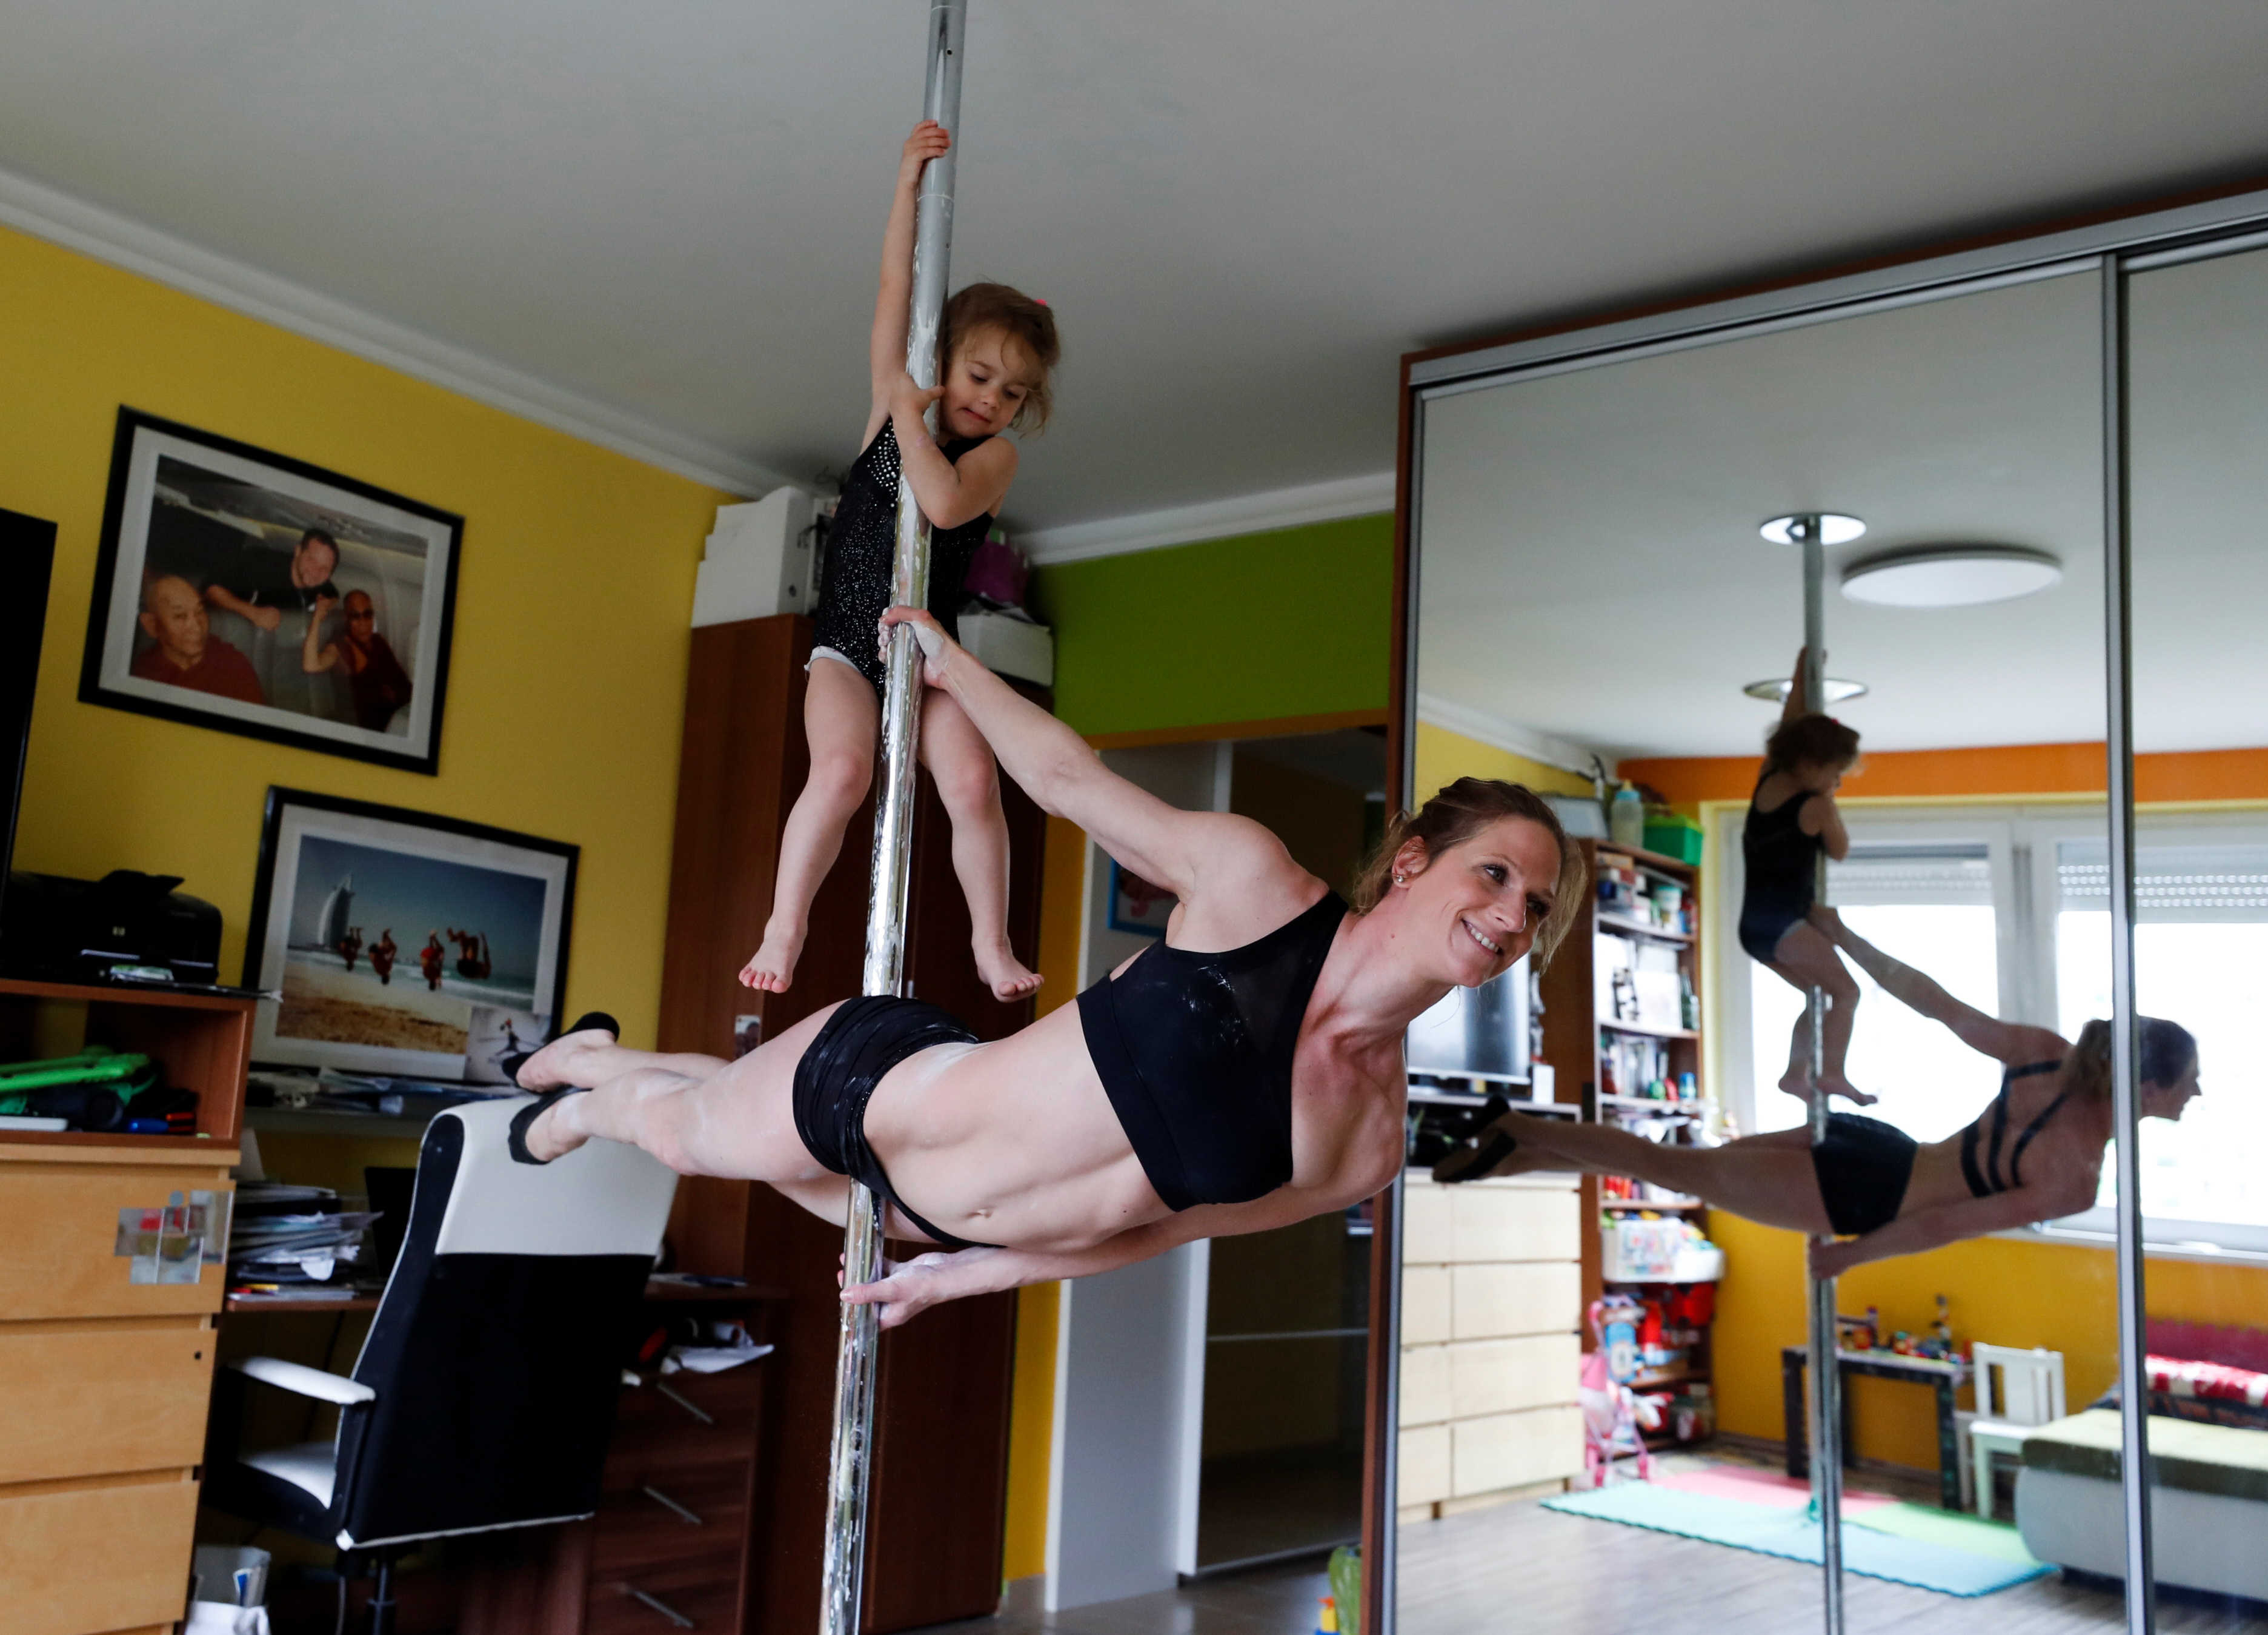 Pole acrobat, Kata Ott-Balogh, member of the Taurin Circus Group practices at home as her daughter Tetisz plays on the pole, amid the coronavirus disease (COVID-19) pandemic, in Budapest, Hungary, April 20, 2021. Picture taken April 20, 2021. REUTERS/Bernadett Szabo